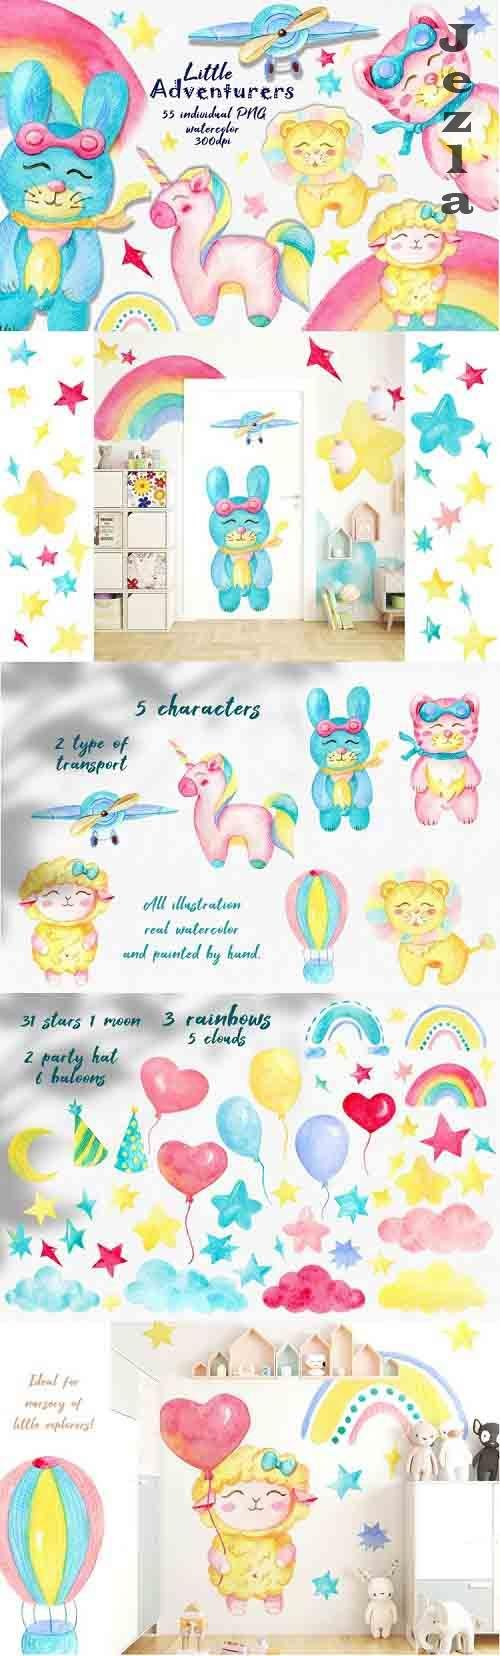 Watercolor kids clipart, Unicorn clipart, Cute Baby animals - 1249287